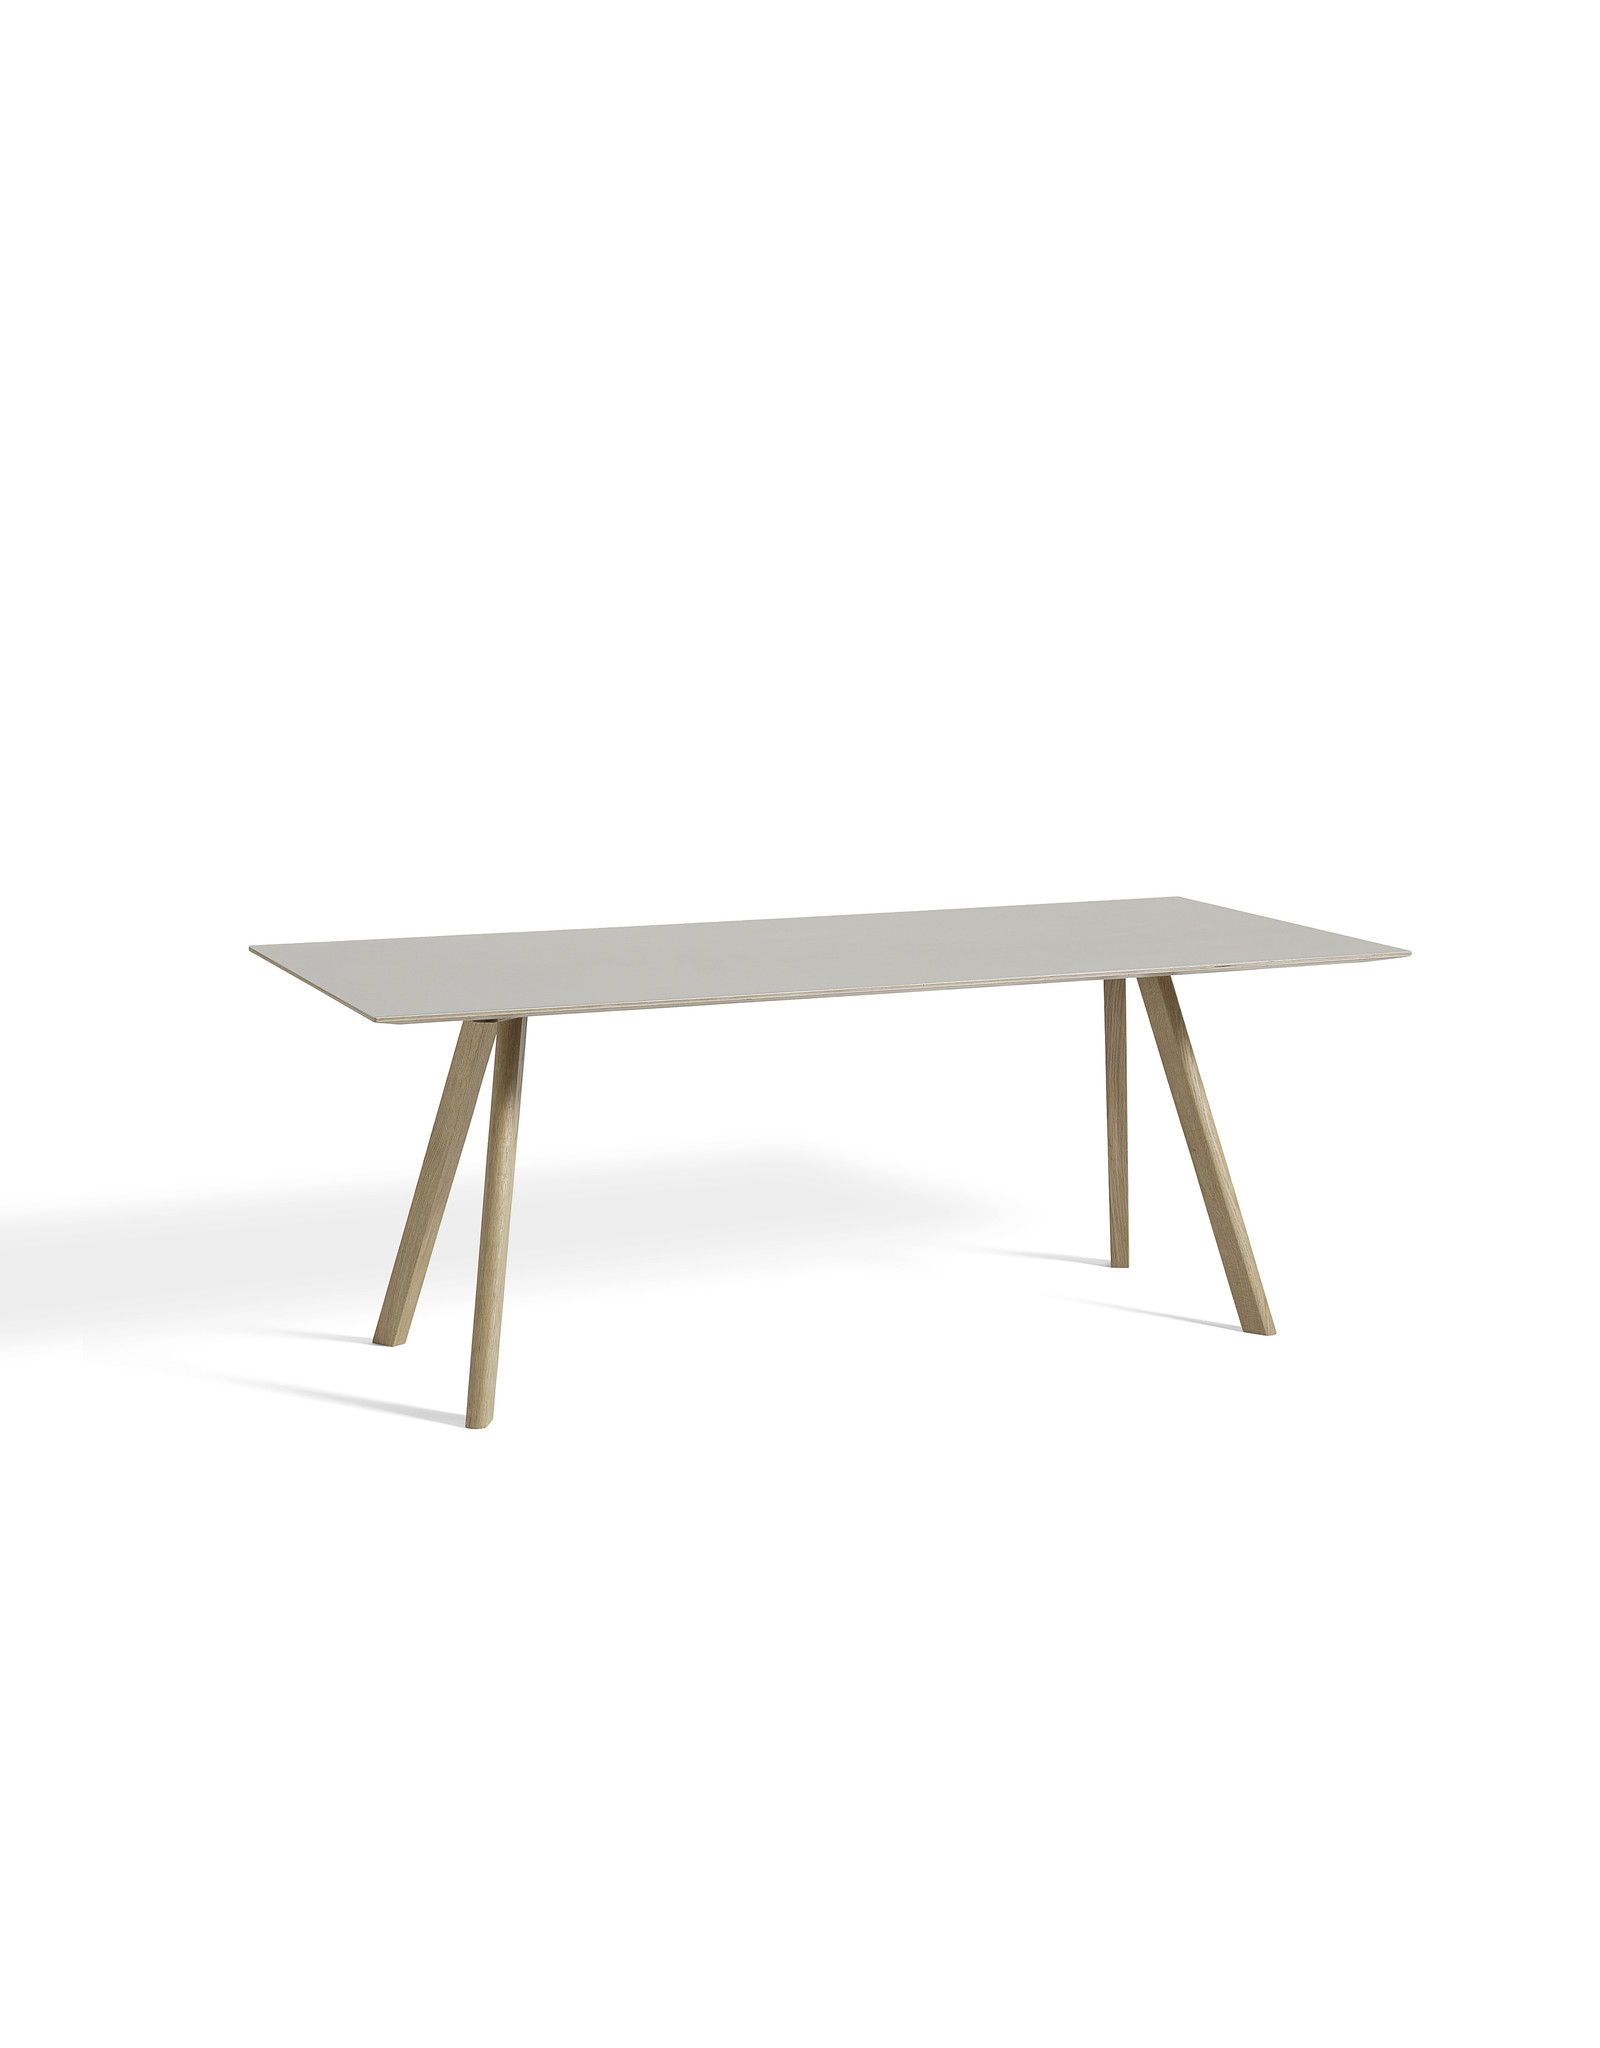 HAY CPH 30 / MATT LACQUERED SOLID OAK / OFF WHITE LINOLEUM / L250 X W90 X H74